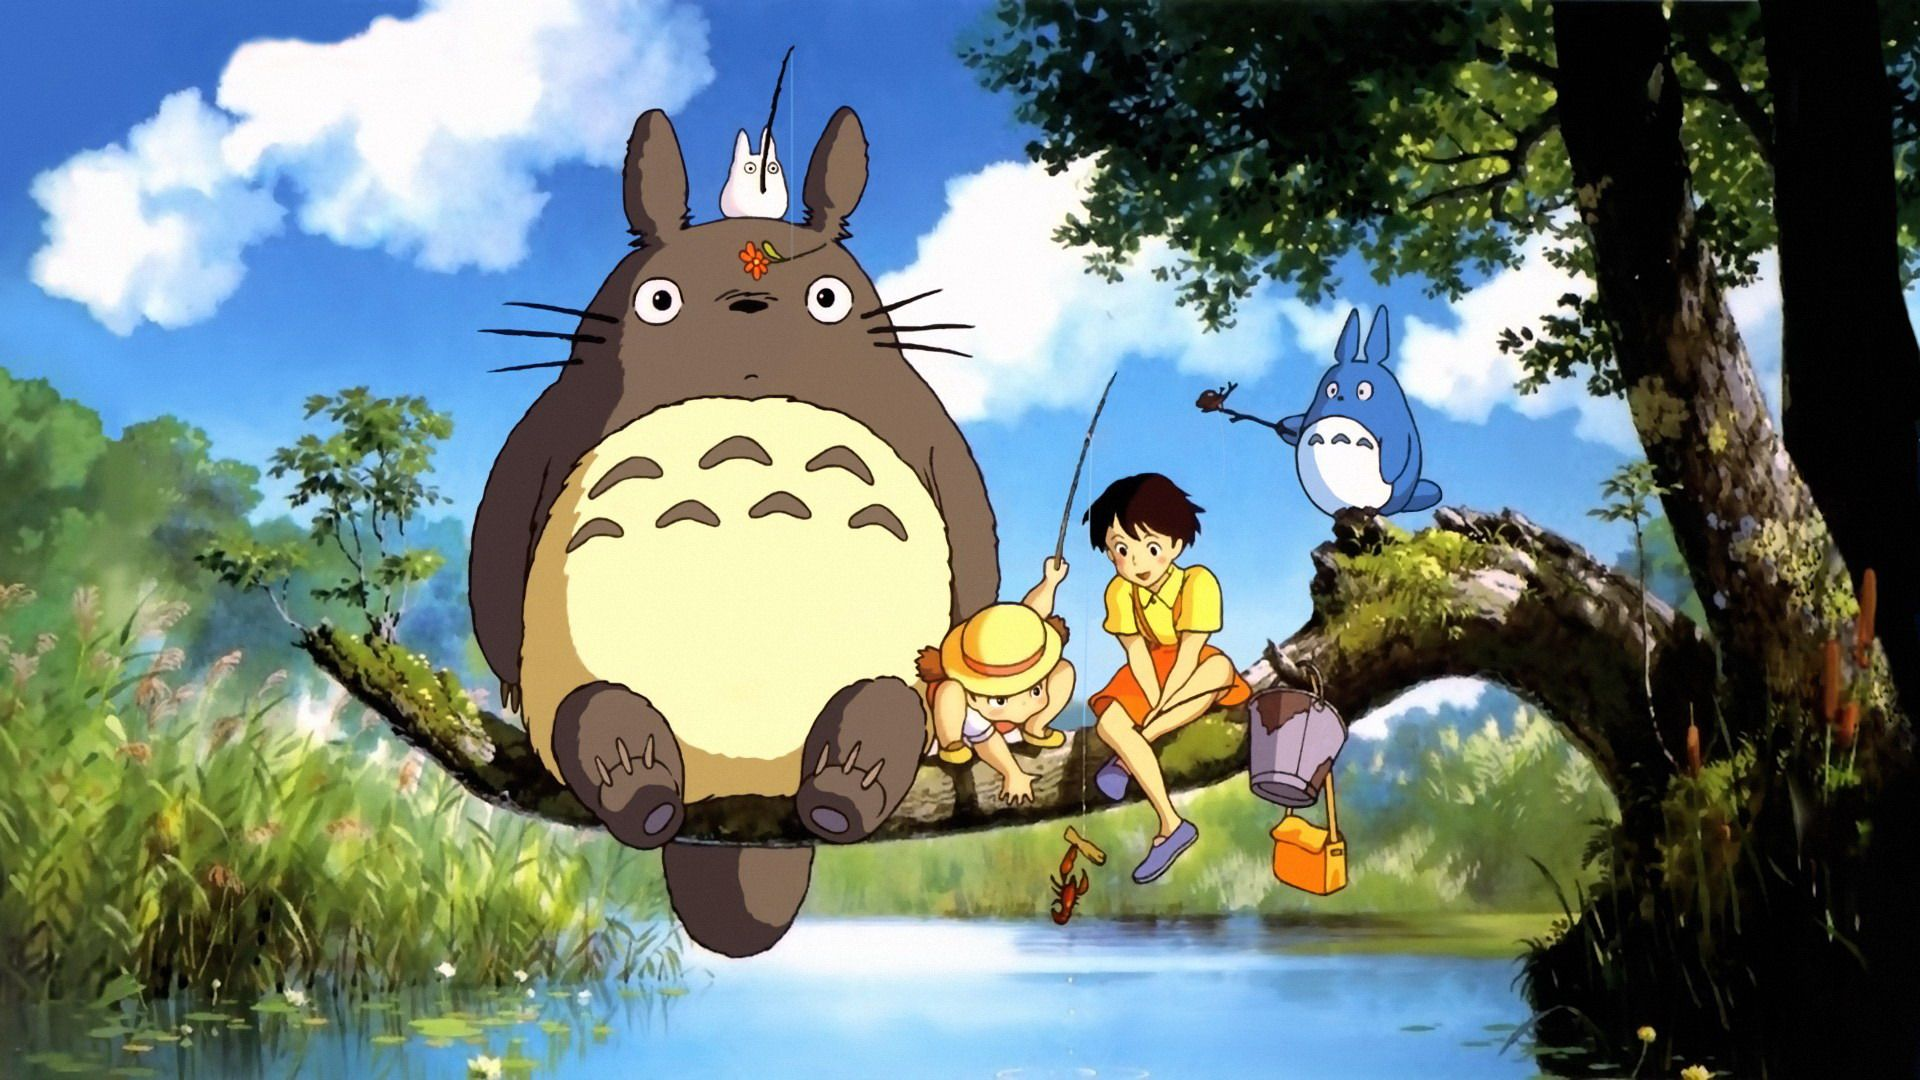 Totoro | Heroes Wiki | FANDOM powered by Wikia